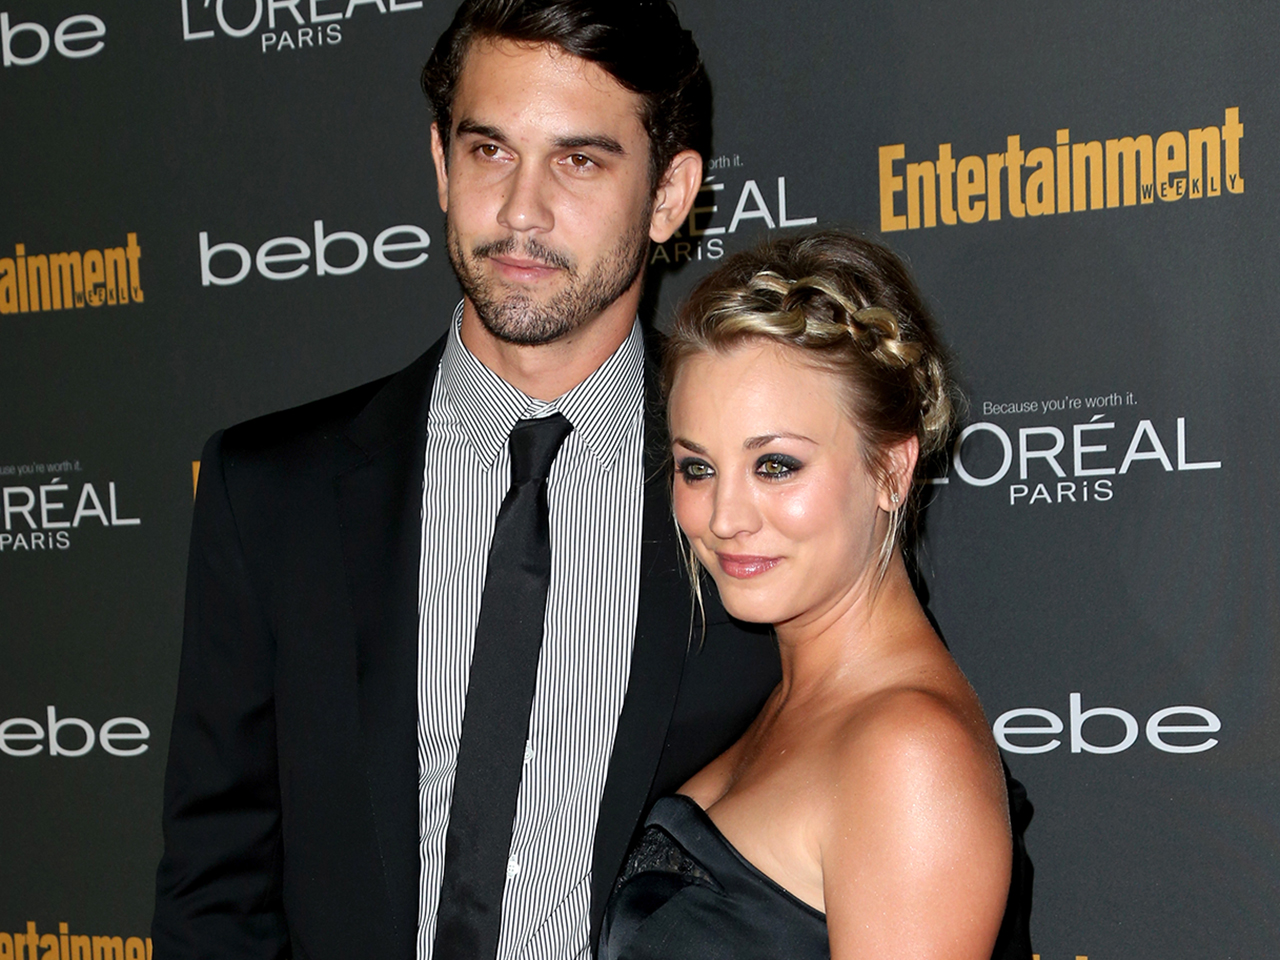 Image: Ryan Sweeting and Kaley Cuoco